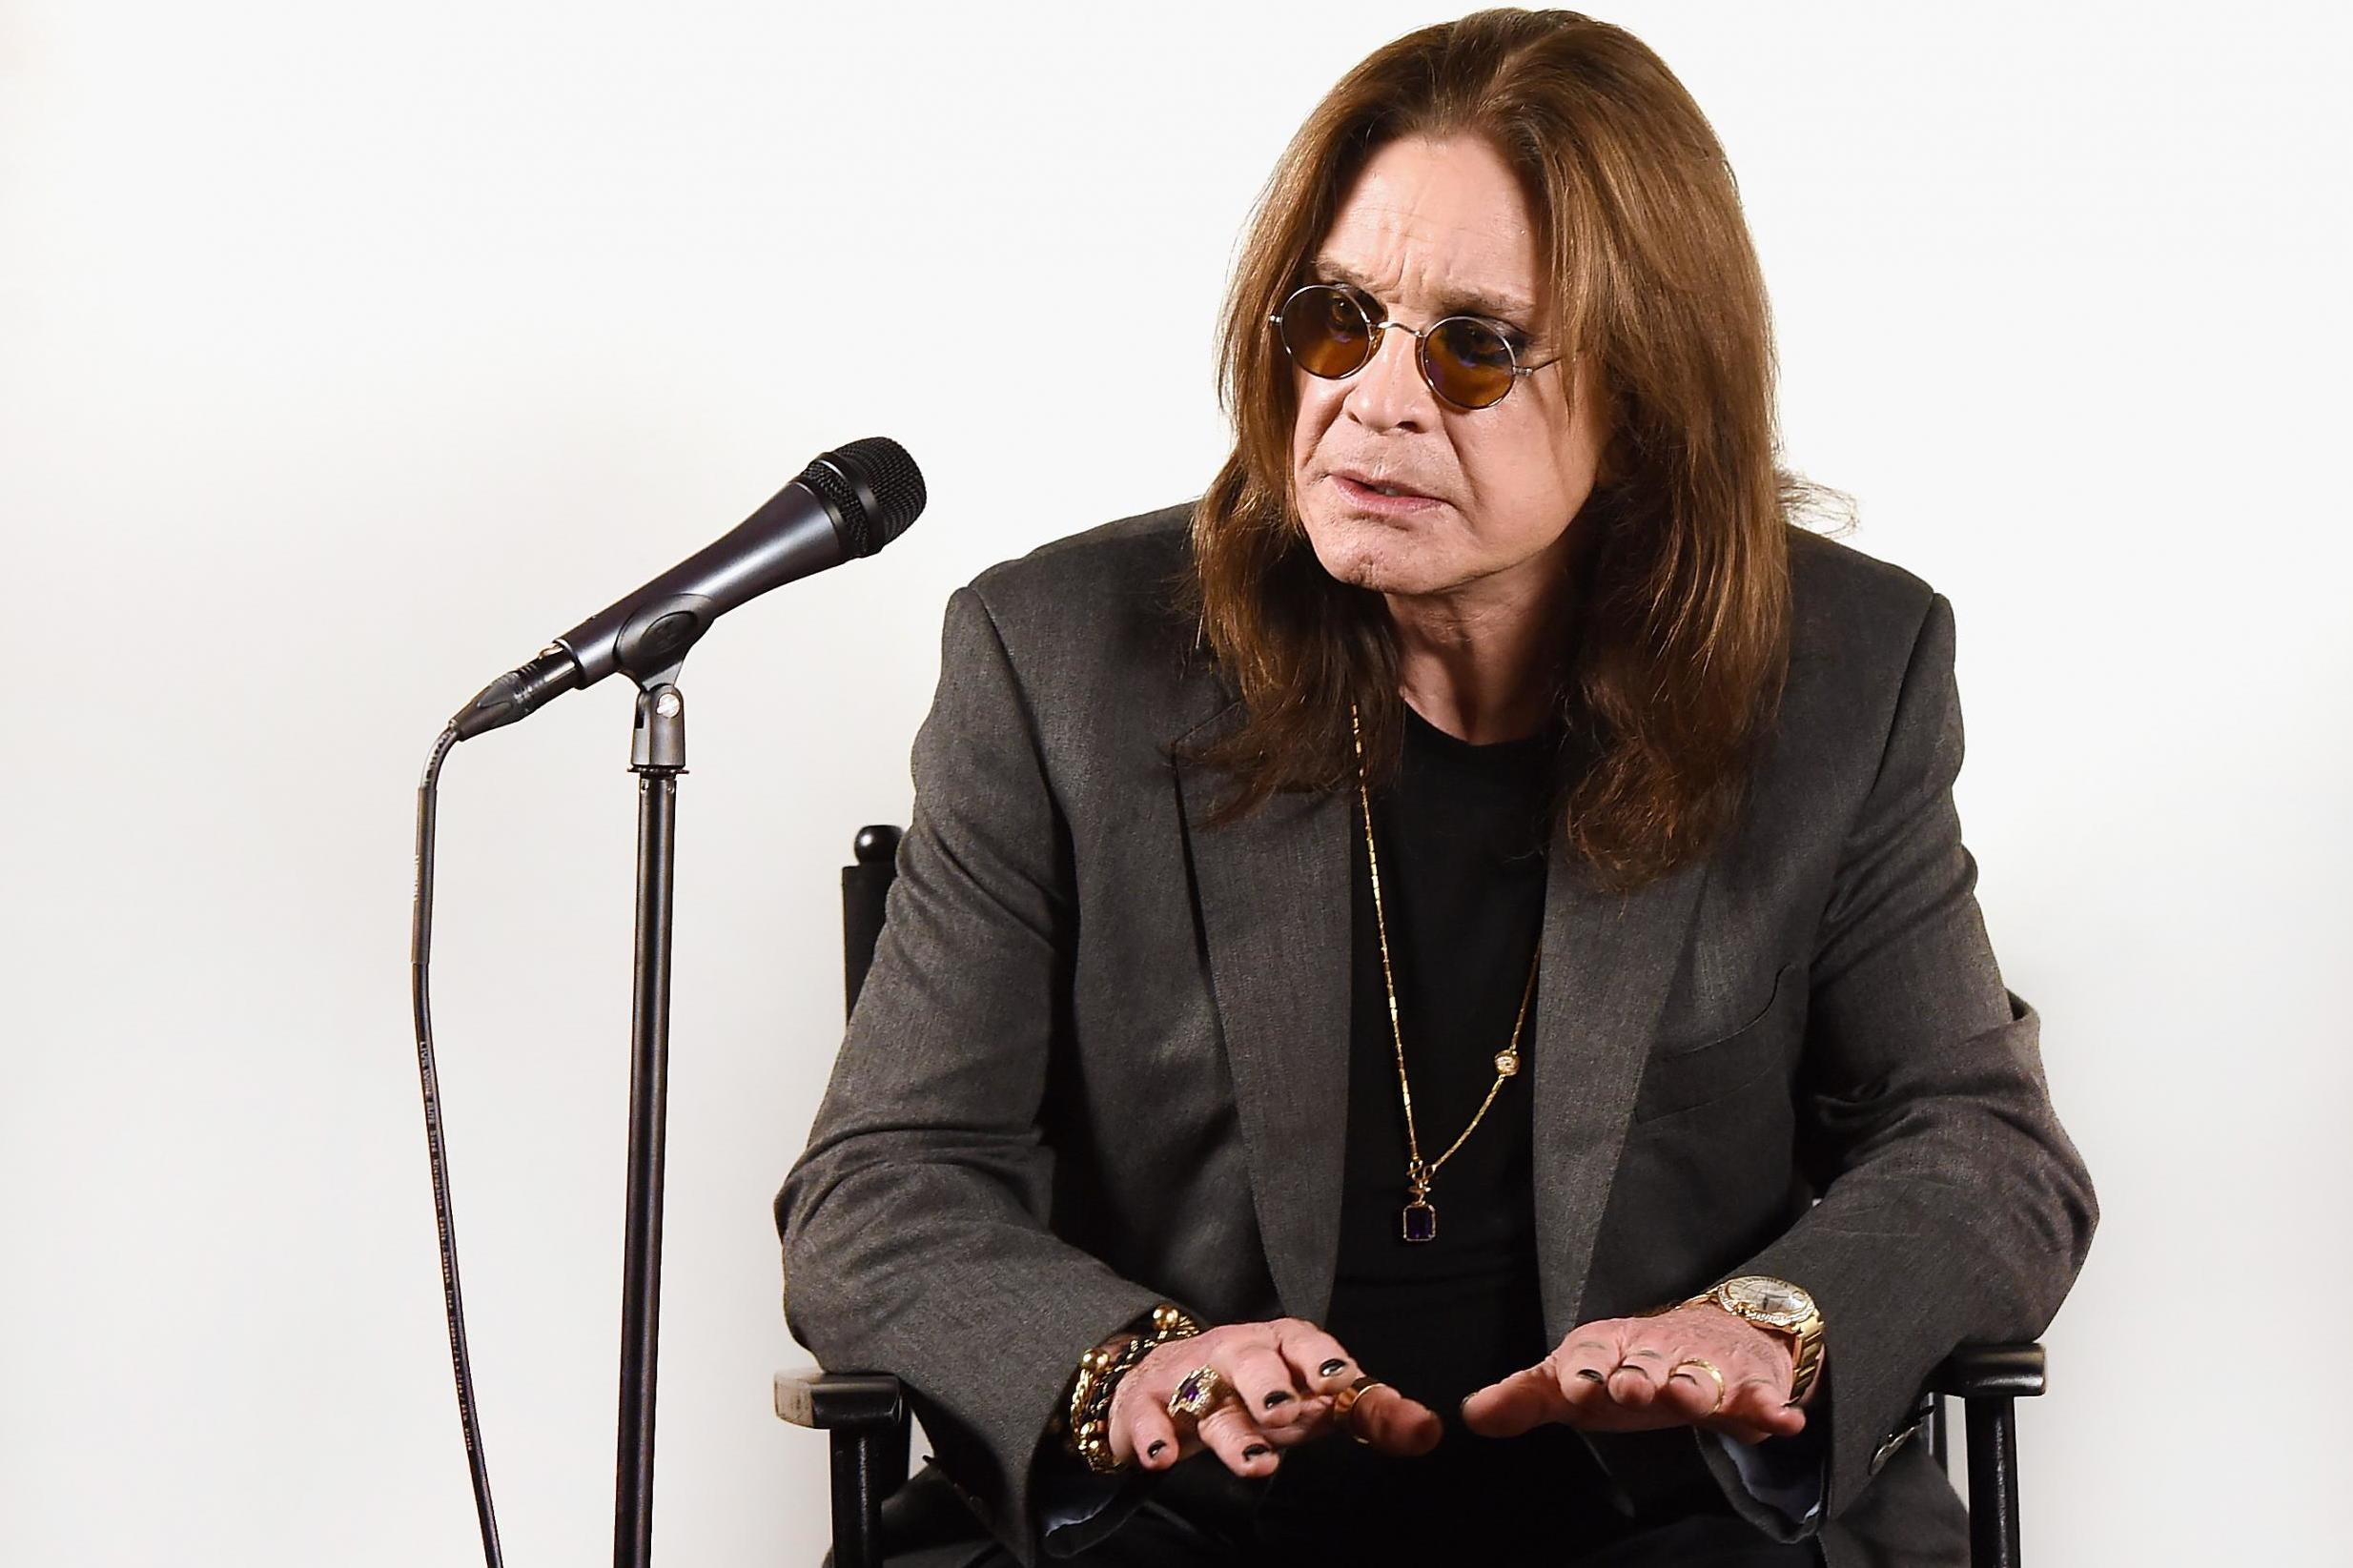 Bernie Tormé death: Ozzy Osbourne pays tribute to former guitarist - 'He was a gentle soul with a heart of gold'